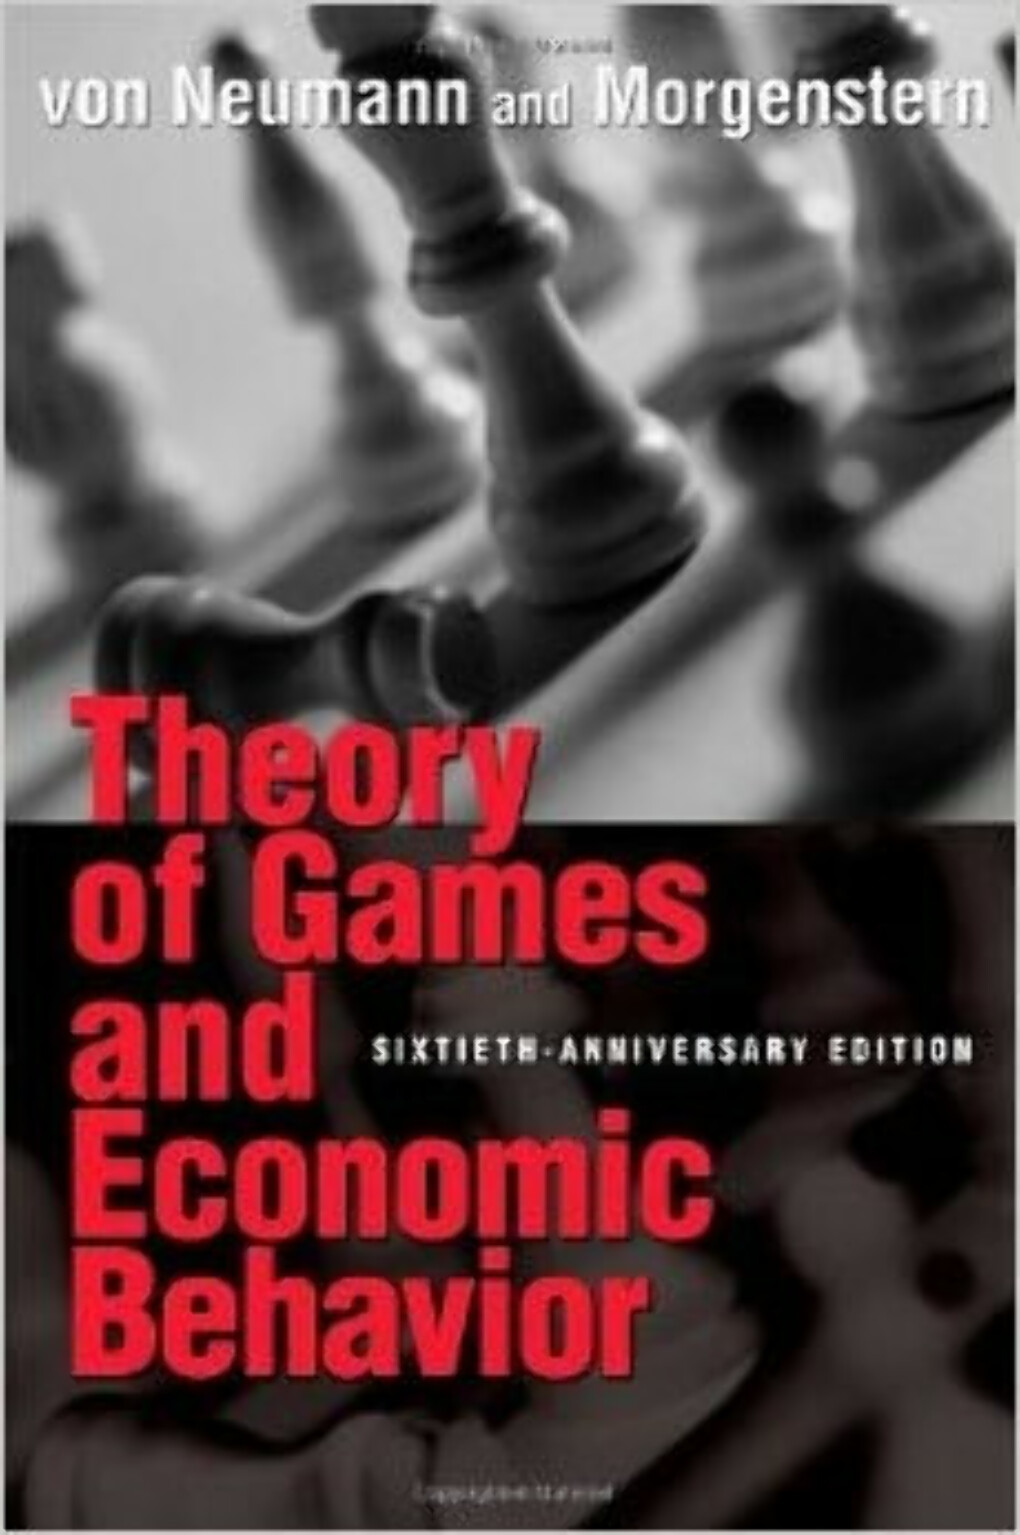 Theory of Games and Economic Behavior (Princeton Classic Editions)                                Paperback